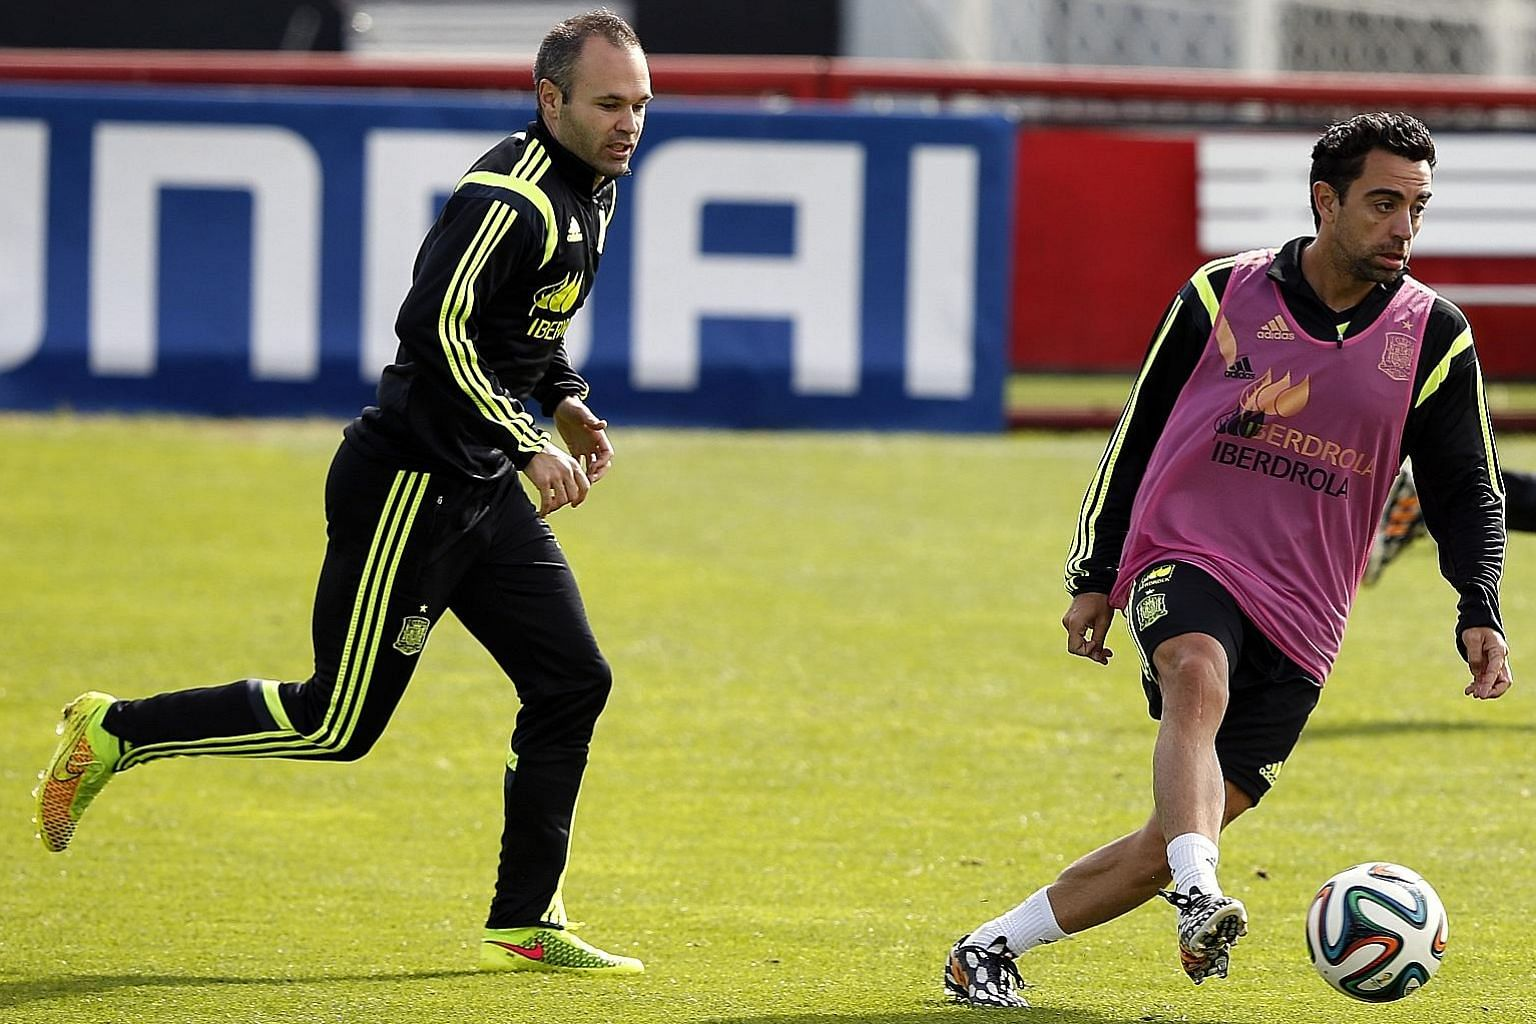 Xavi Hernandez (with ball) and Andres Iniesta training in Brazil with Spain's national team, then the holders, for the 2014 World Cup. PHOTO: EPA-EFE